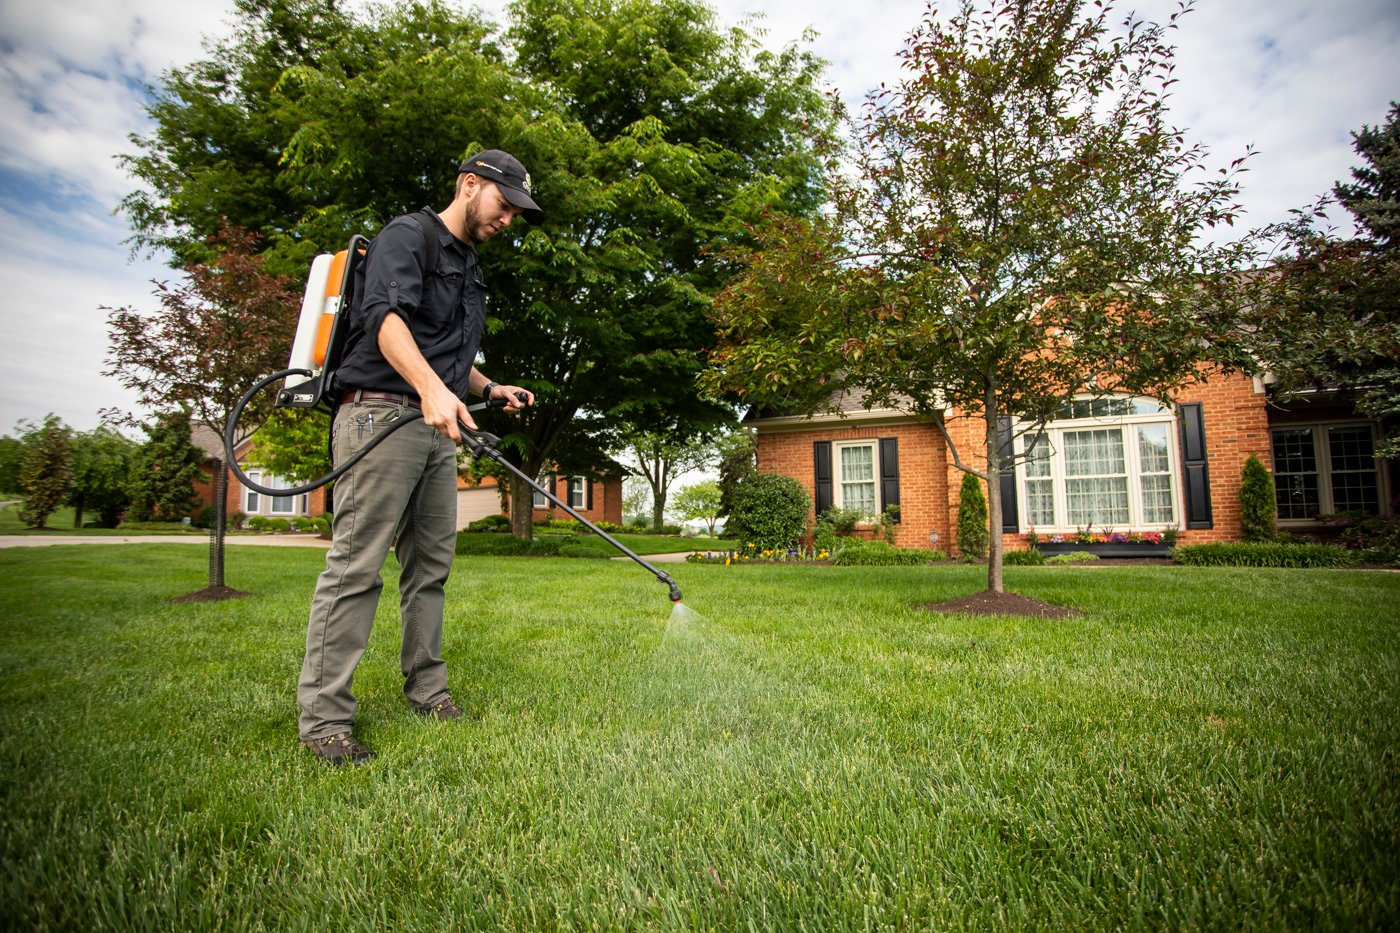 Lawn care technician spraying for weeds